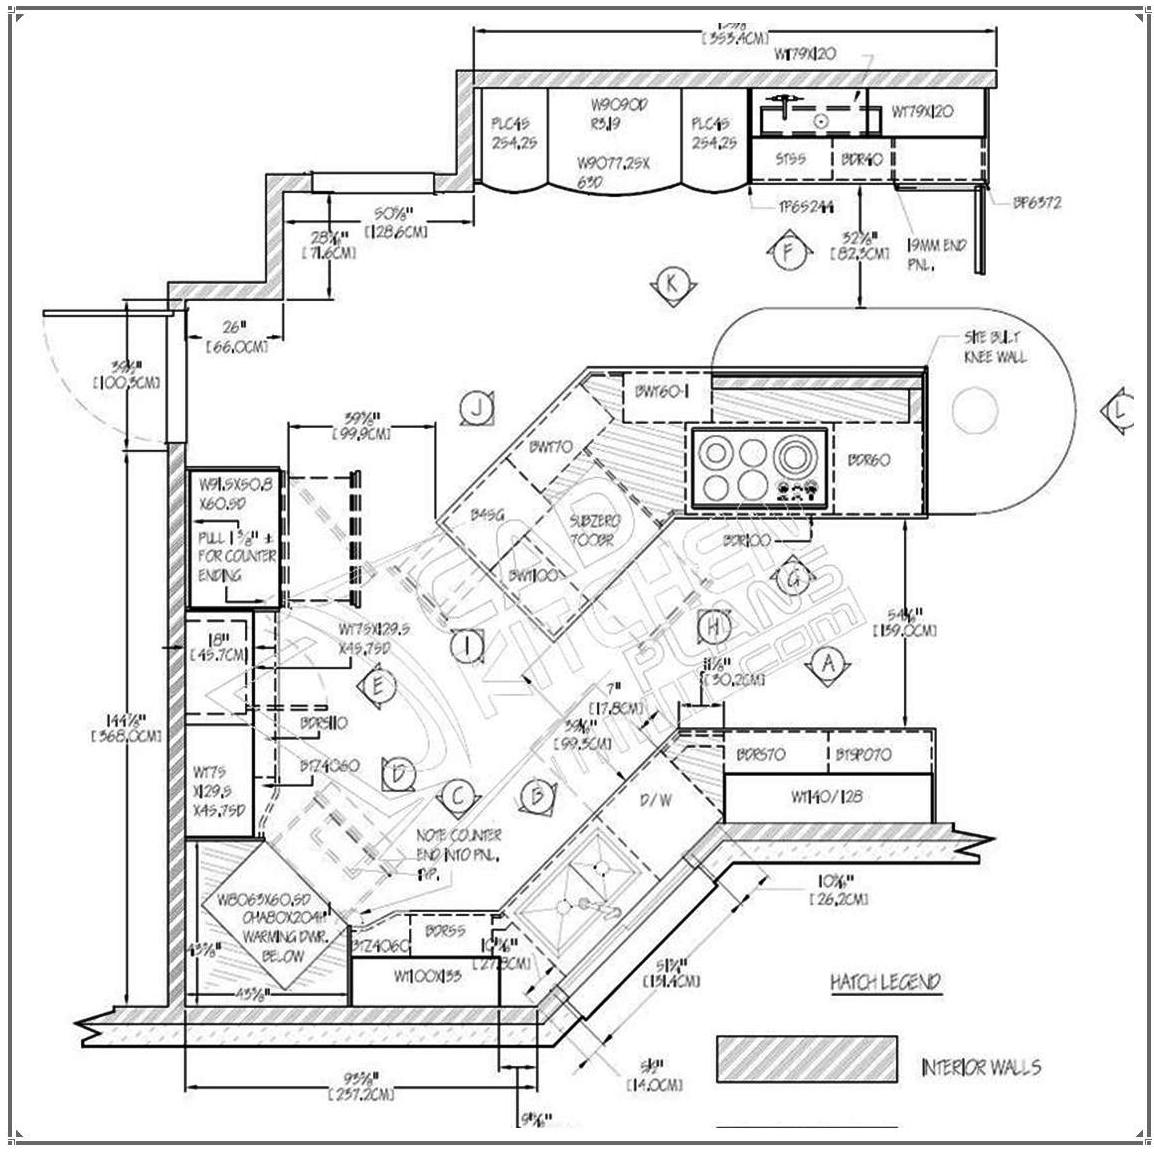 Sample Kitchen Floor Plans: House Site Plan Drawing At GetDrawings.com